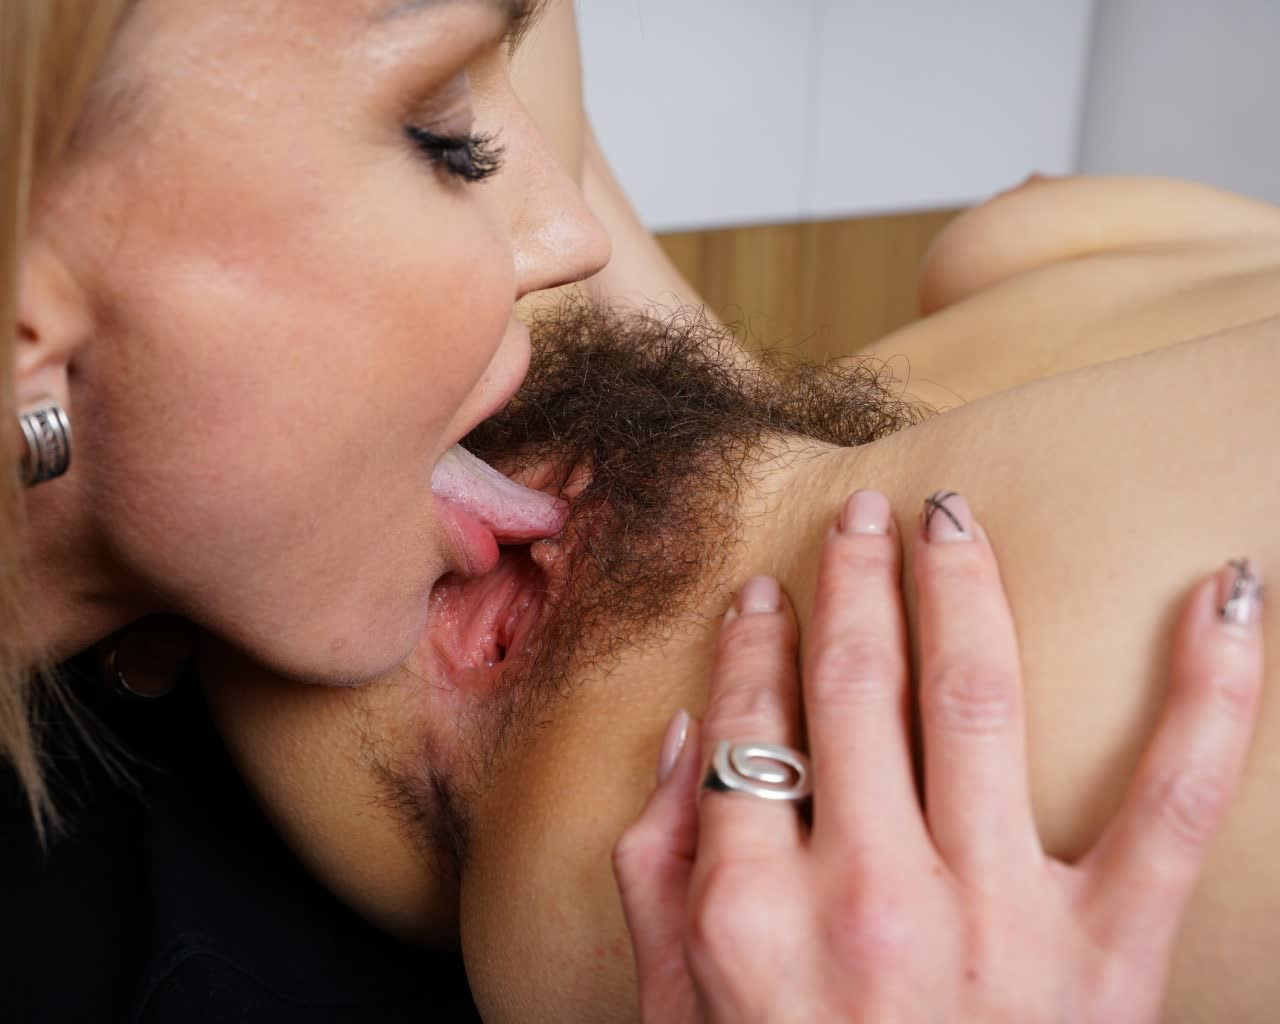 Juicy cock ready for blowjob